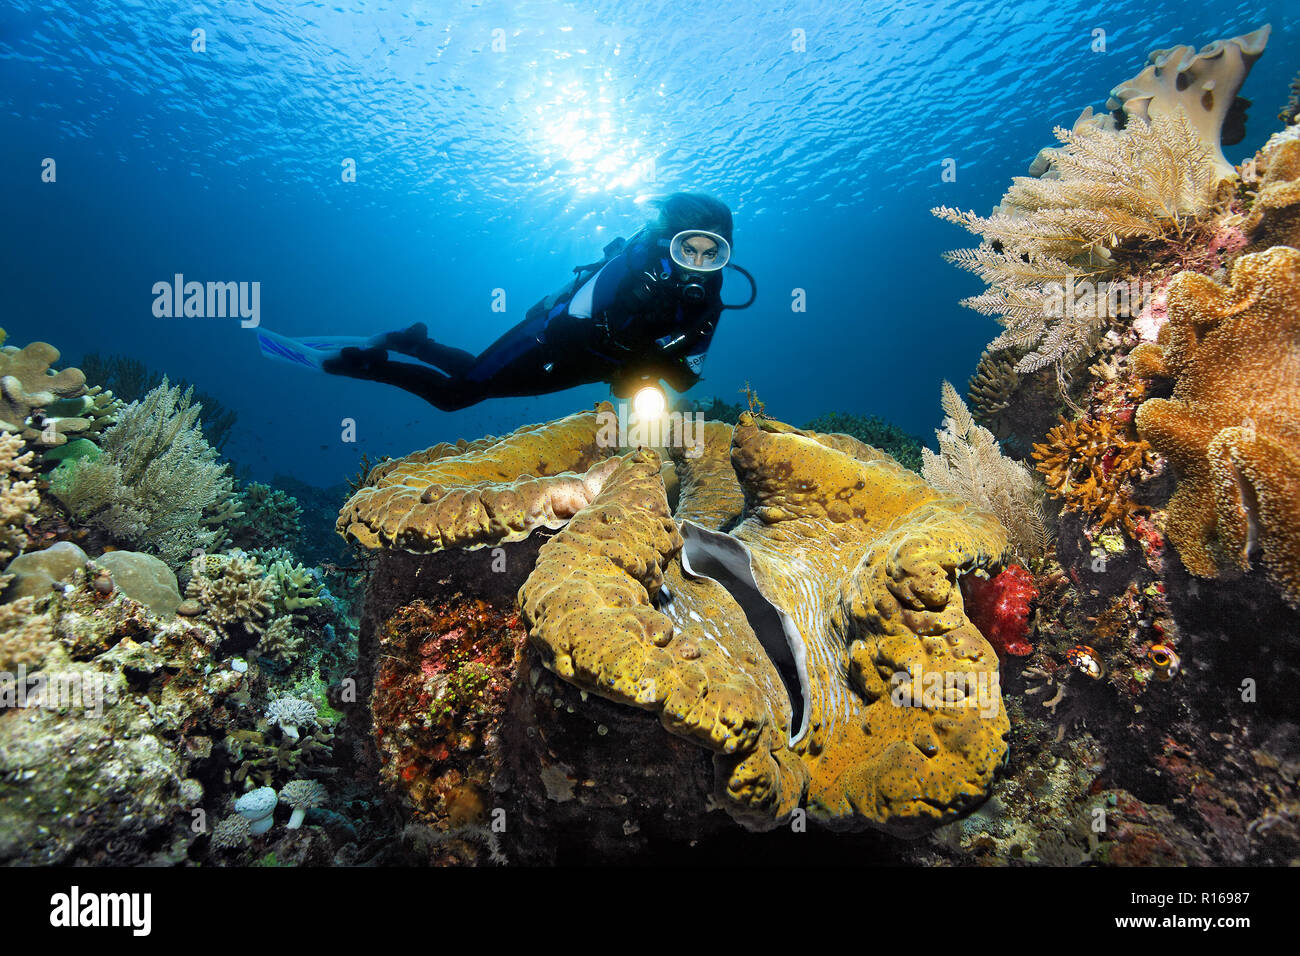 Diver viewed with lamp Giant clam (Tridacna gigas), Backlight, Sun, Pacific, Queensland, Australia Stock Photo